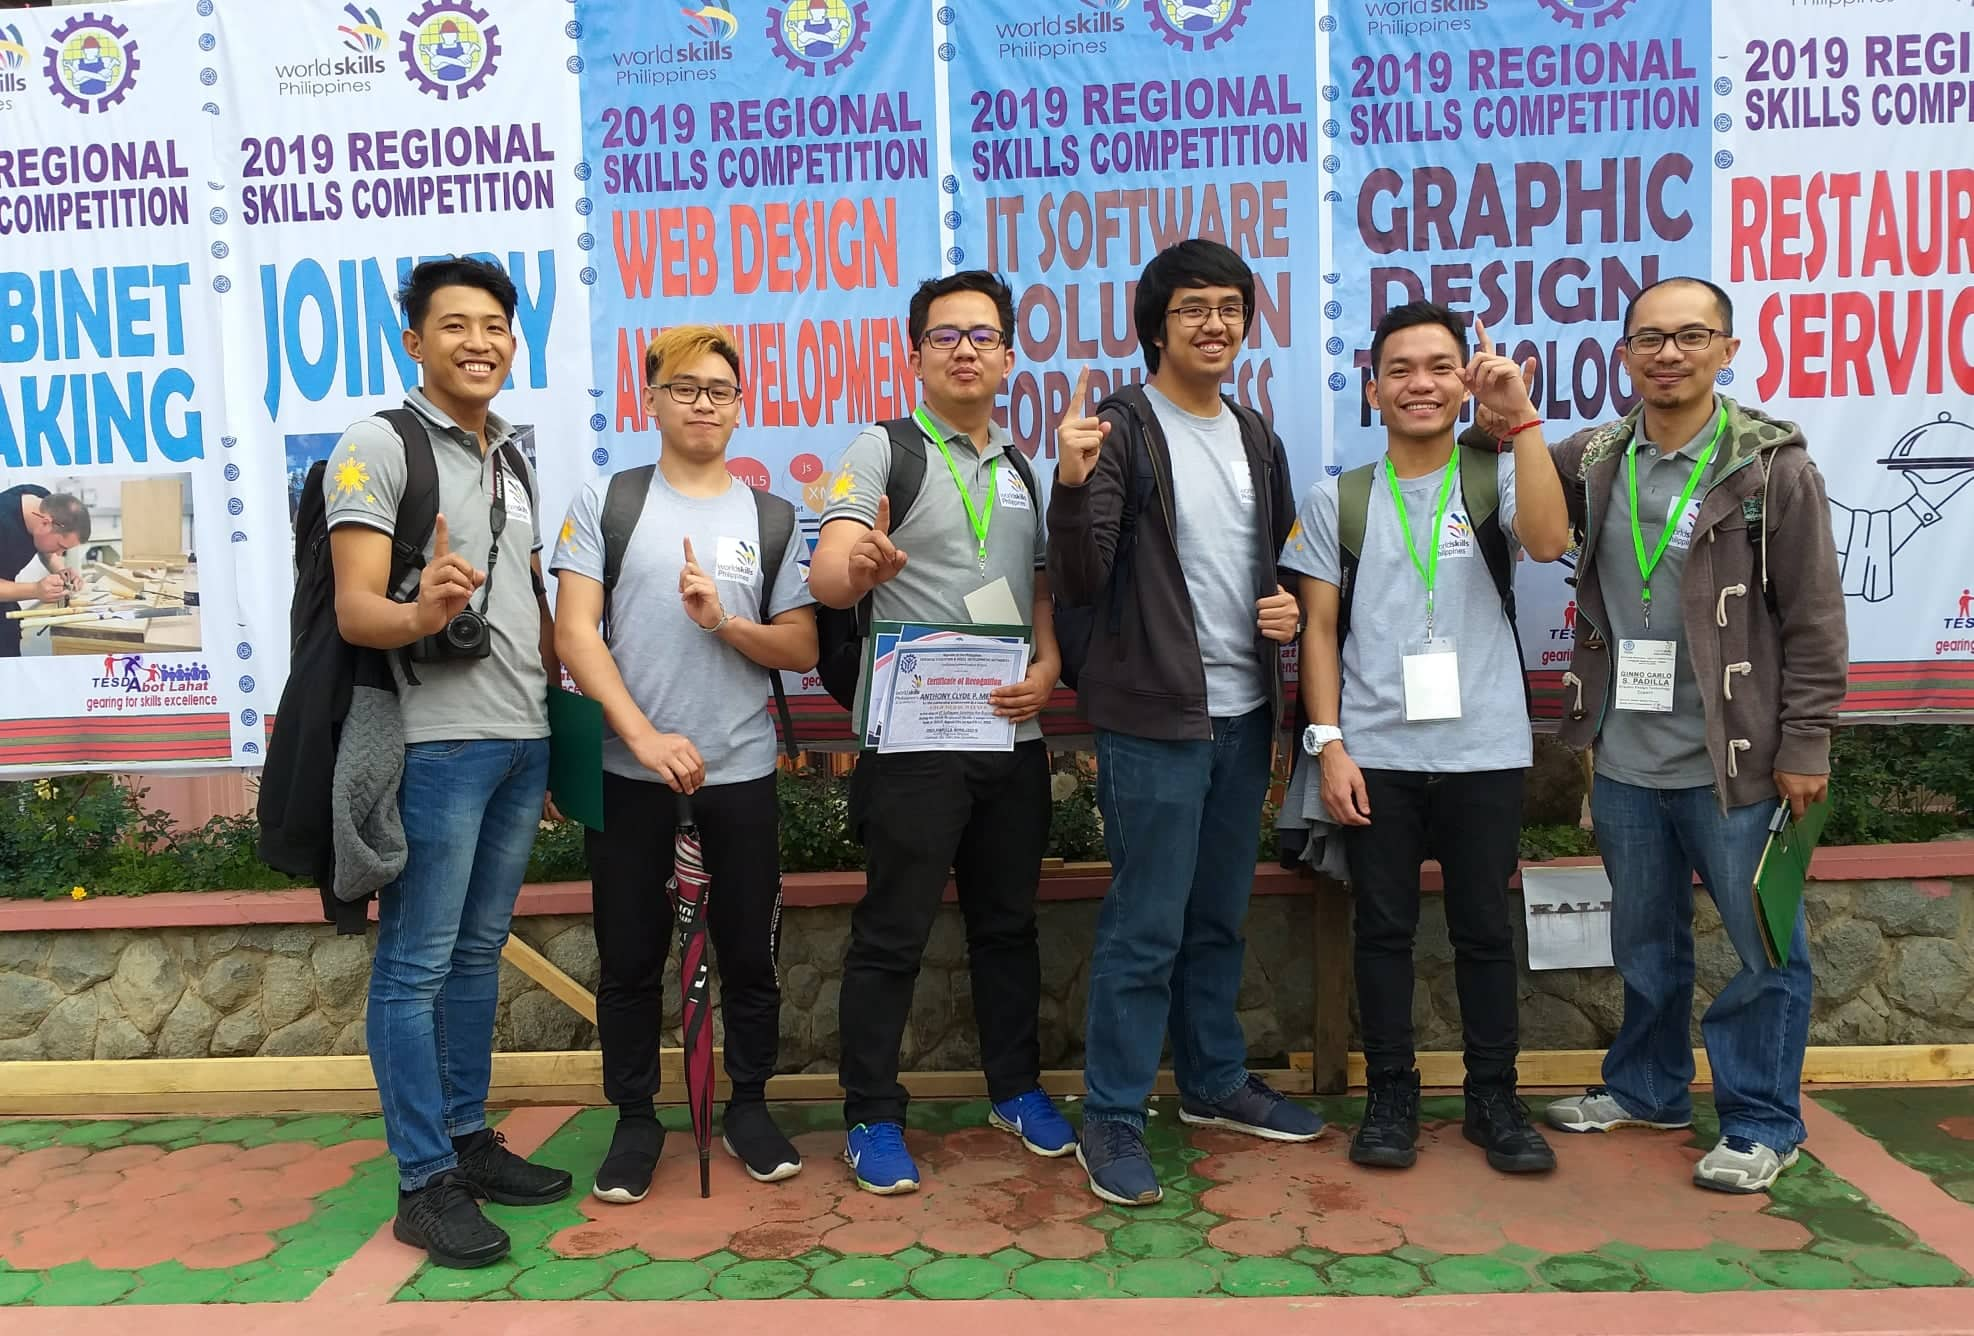 Informatics Baguio dominated the 2019 Regional Skills Competition